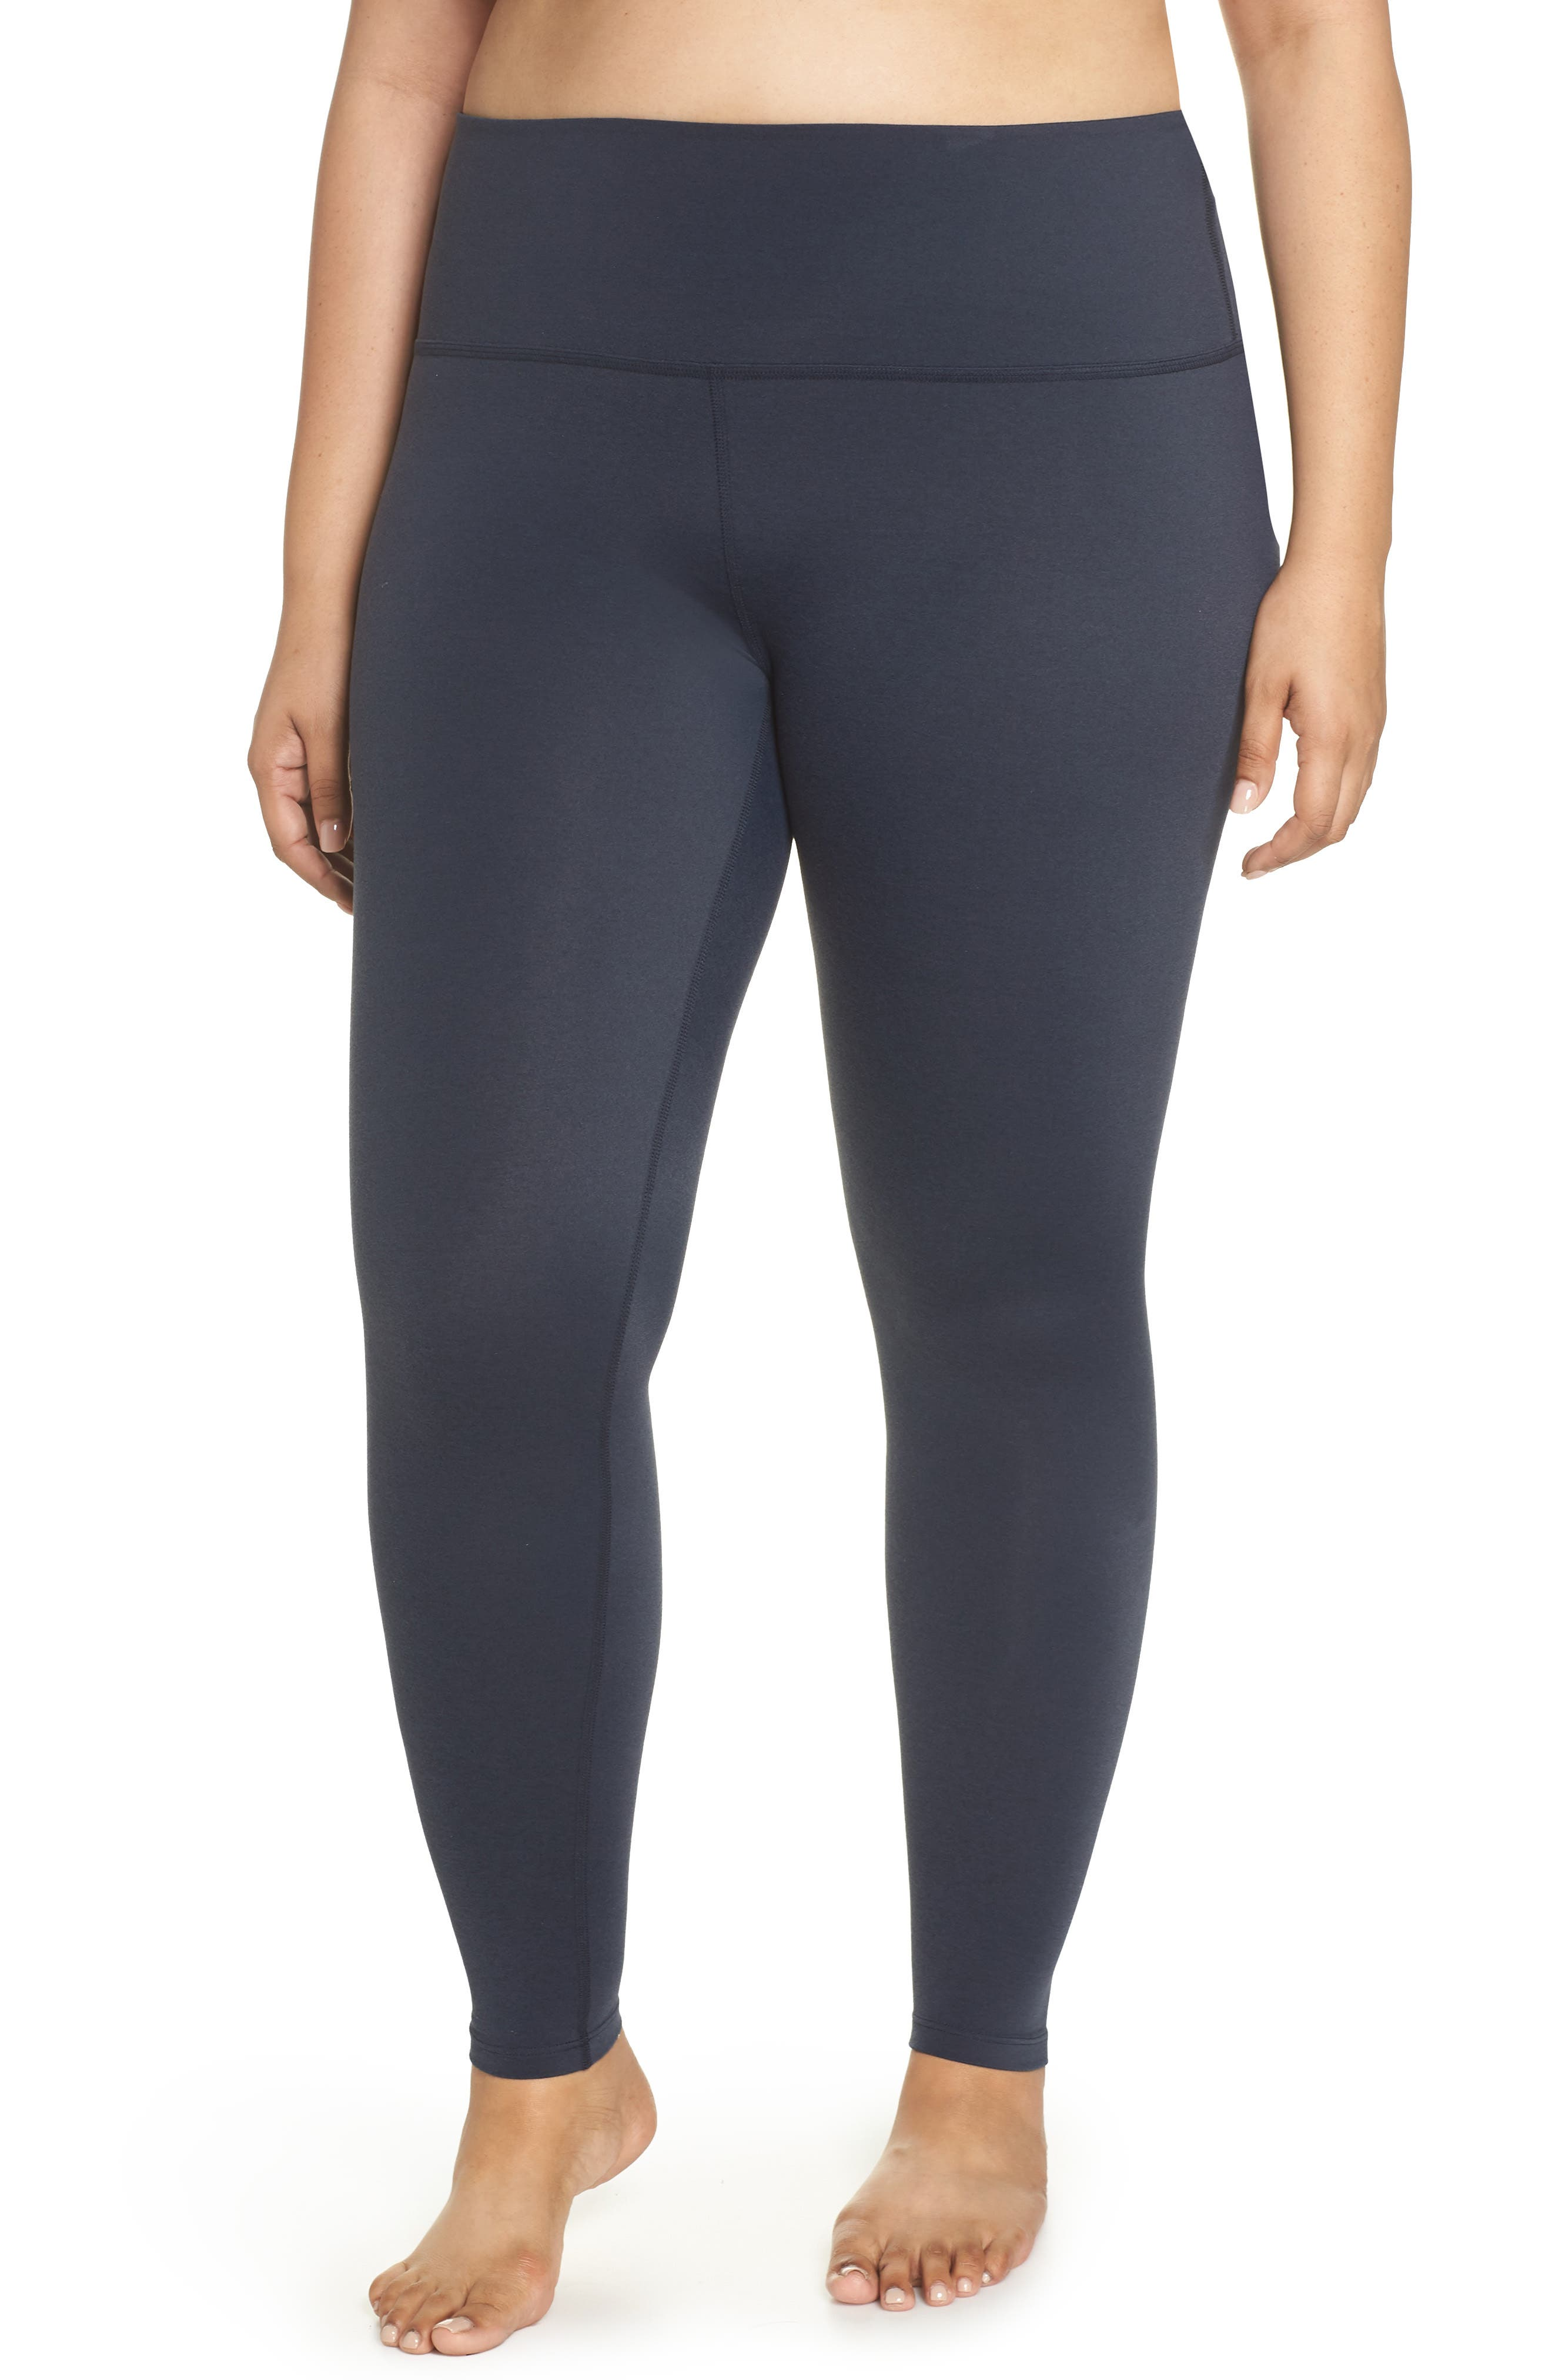 Plush High Waist Leggings,                             Main thumbnail 1, color,                             NOCTURNAL NAVY HEATHER